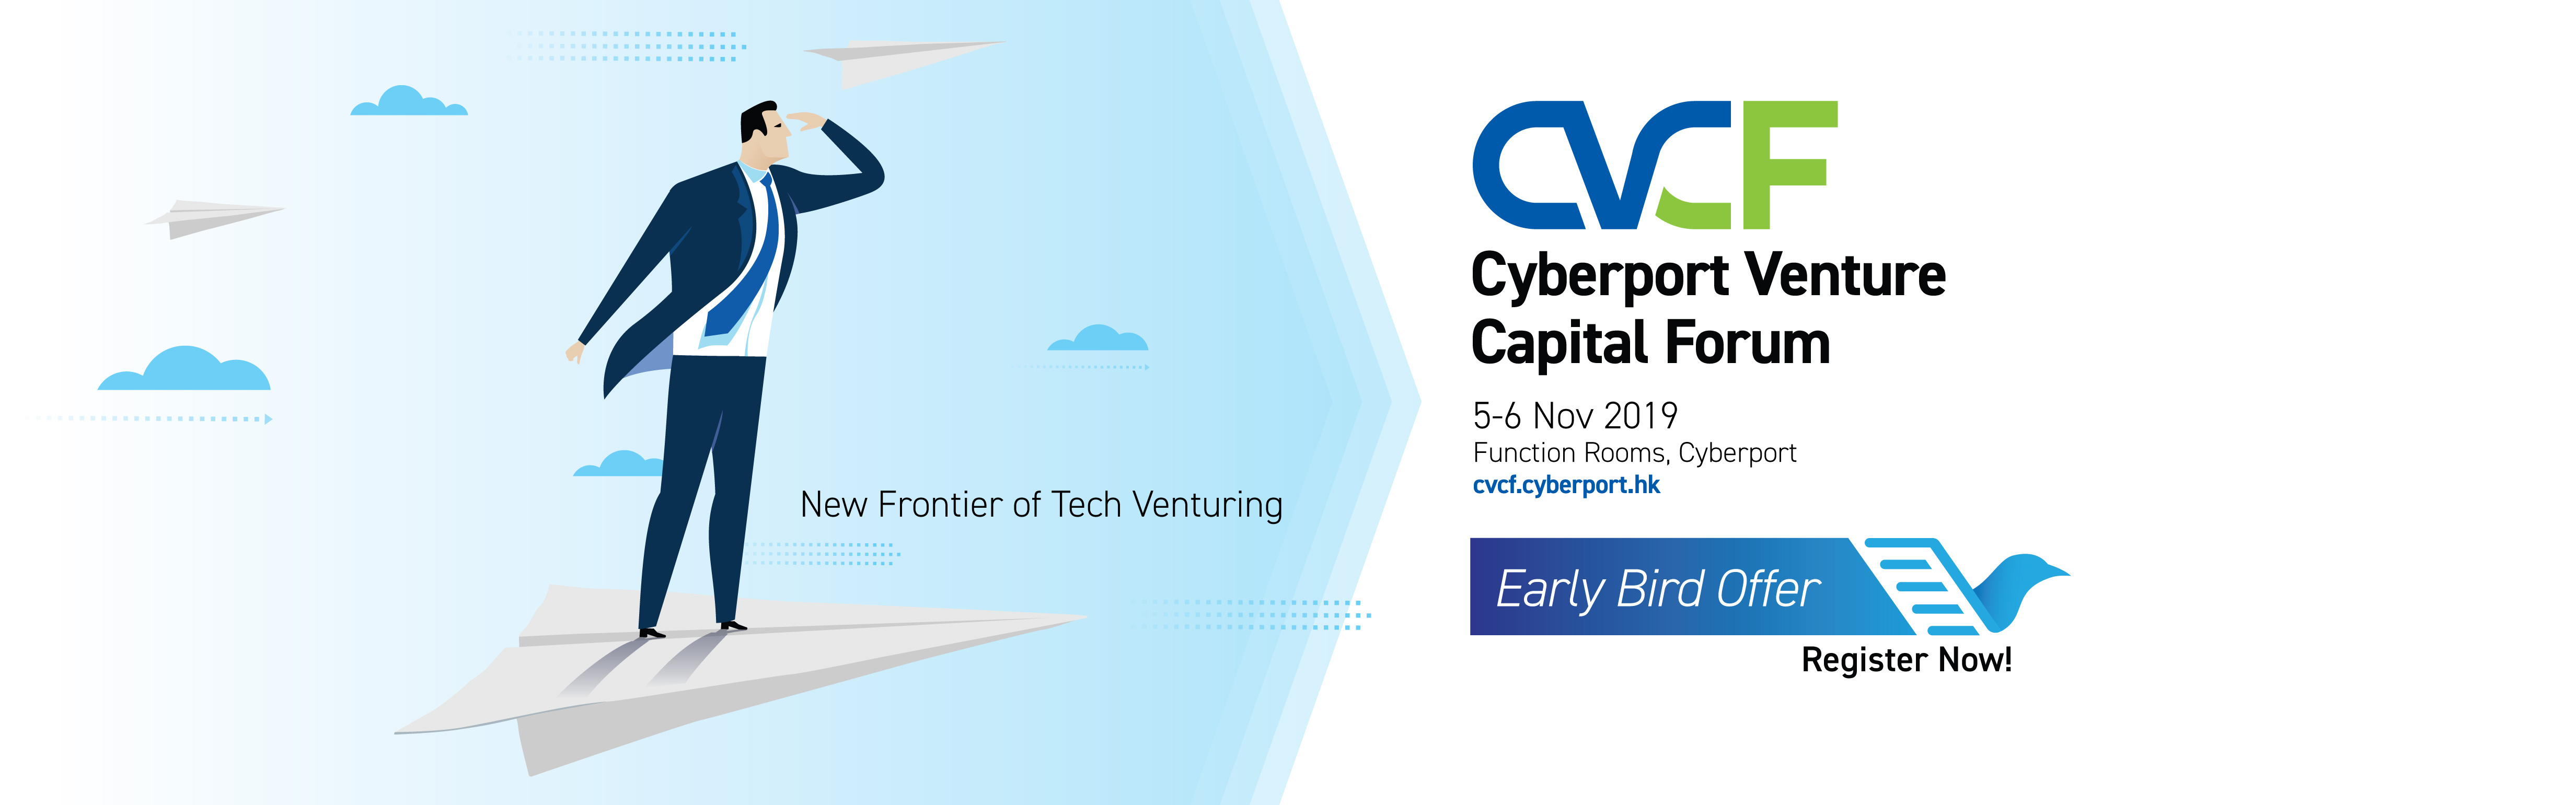 New Frontier of Tech Venturing - Early Bird Offer